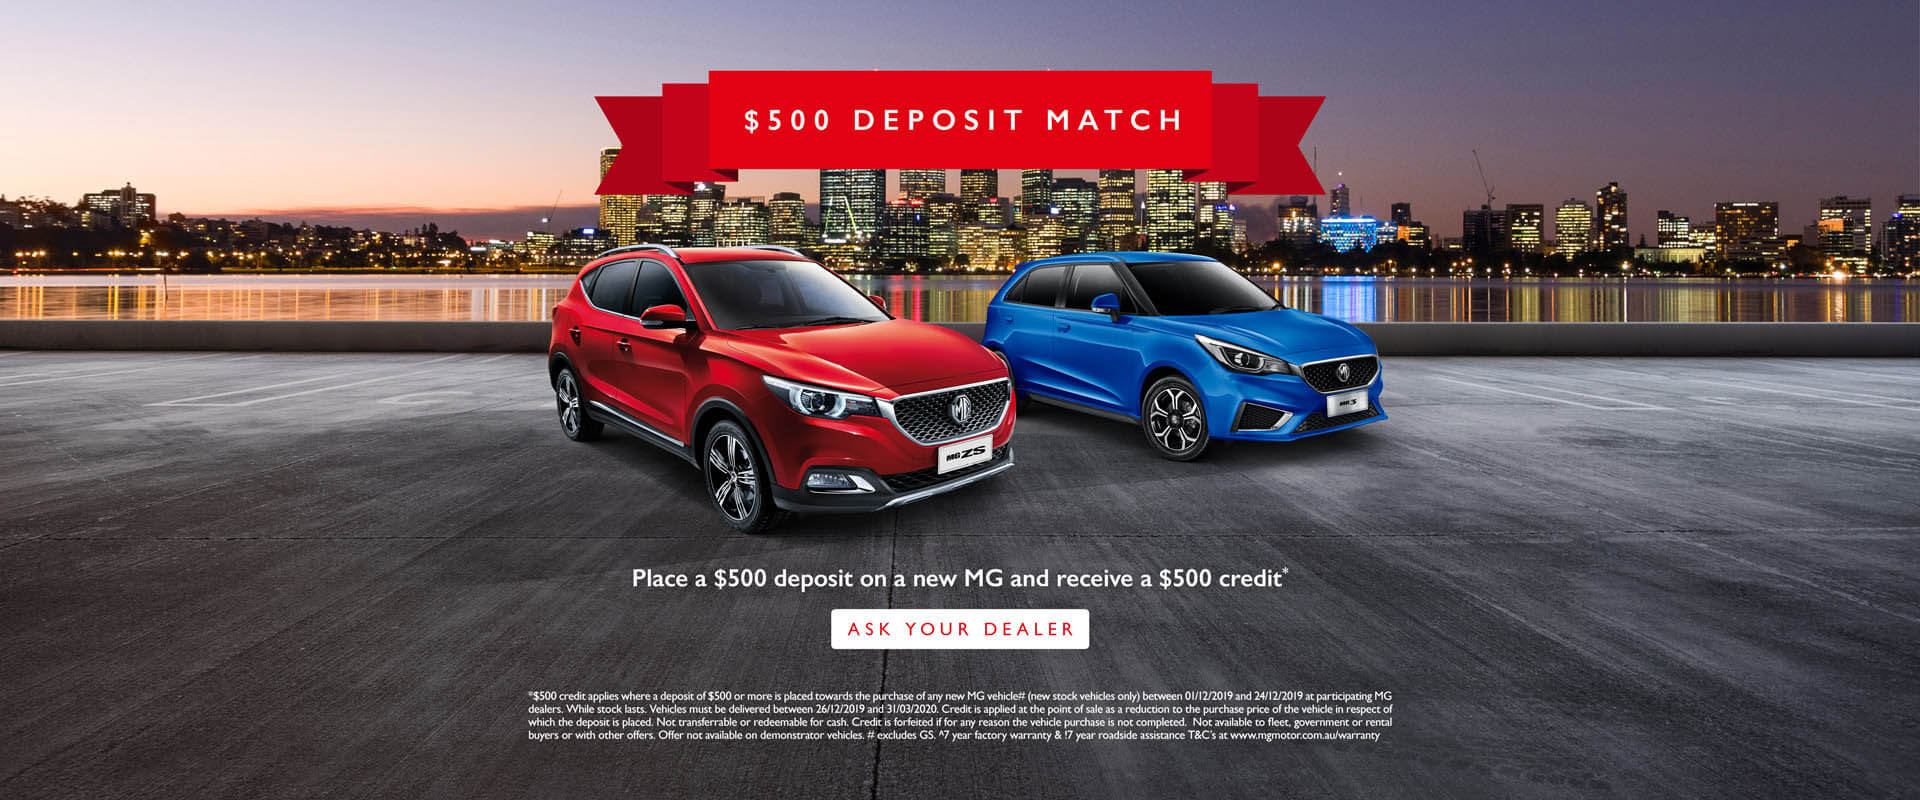 Place a $500 deposit on a new MG and receive $500 credit